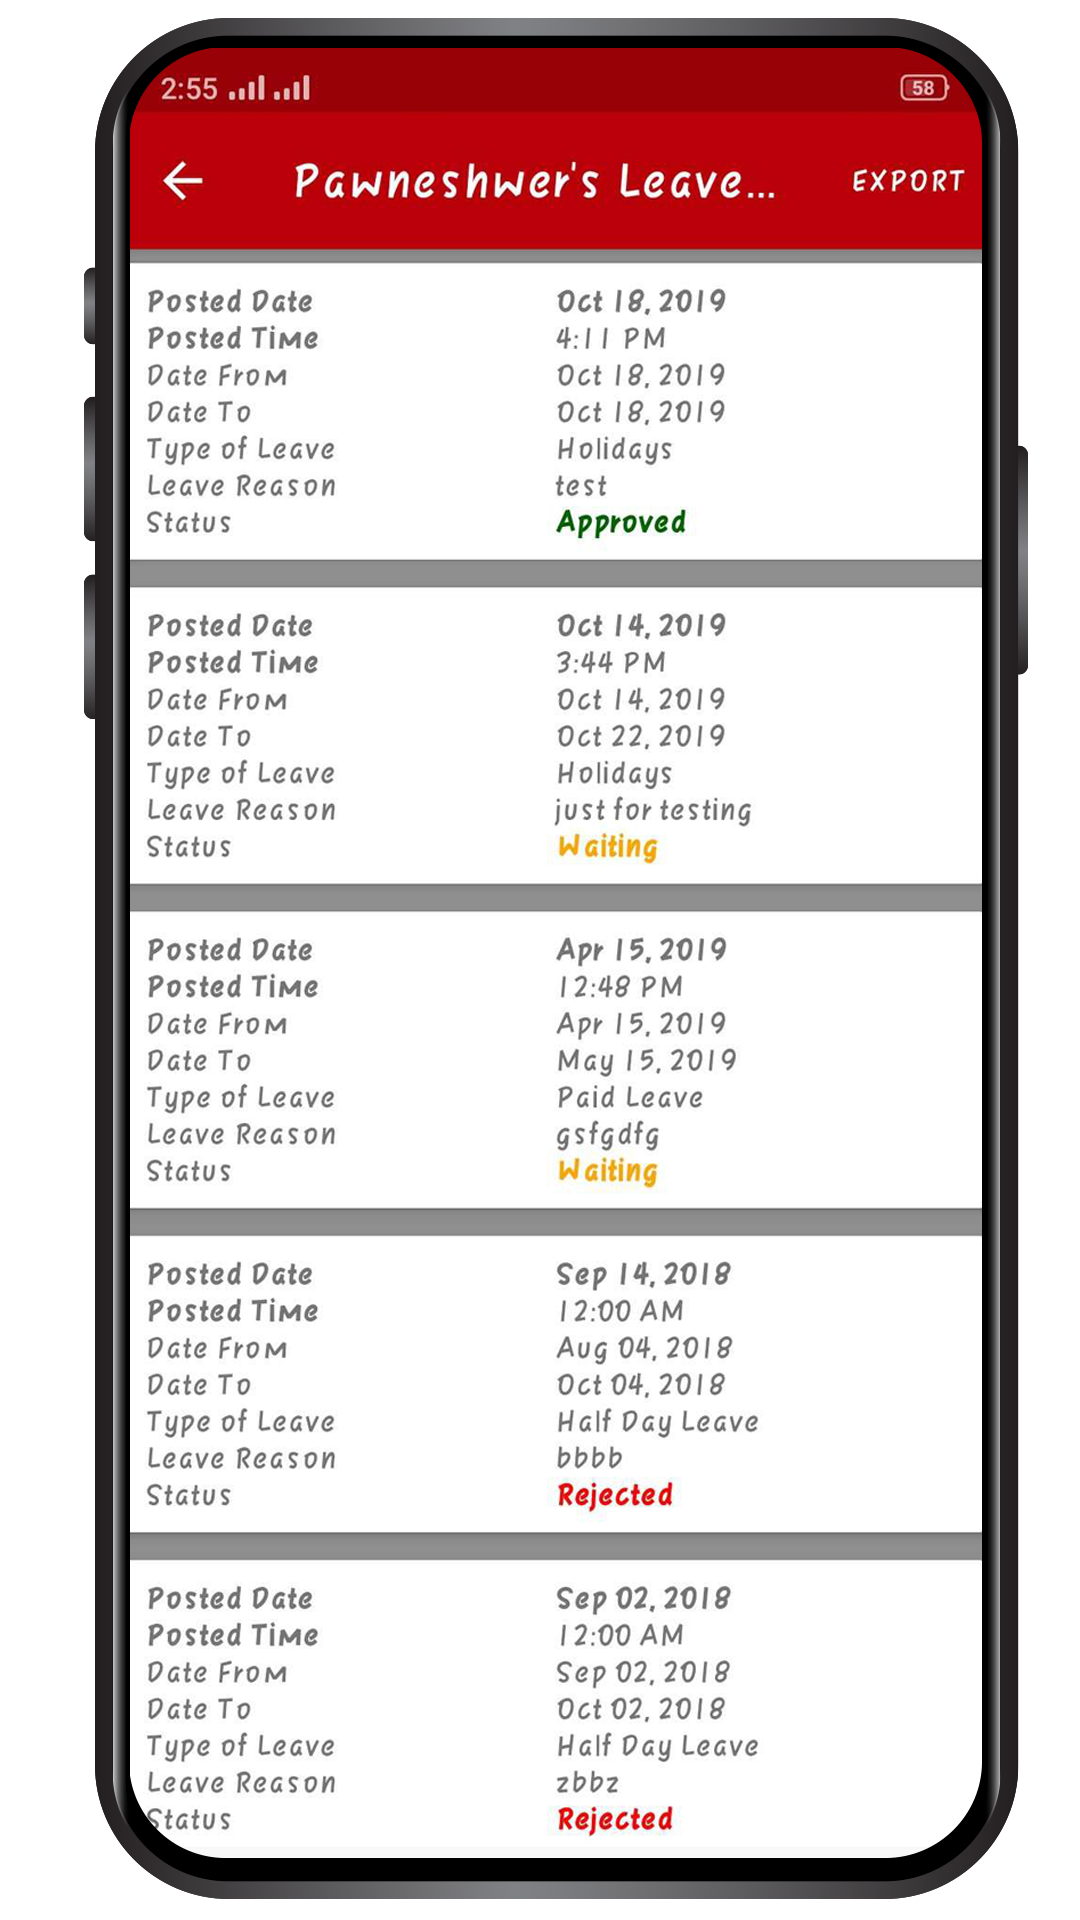 Chase - Sales Employee Tracking App